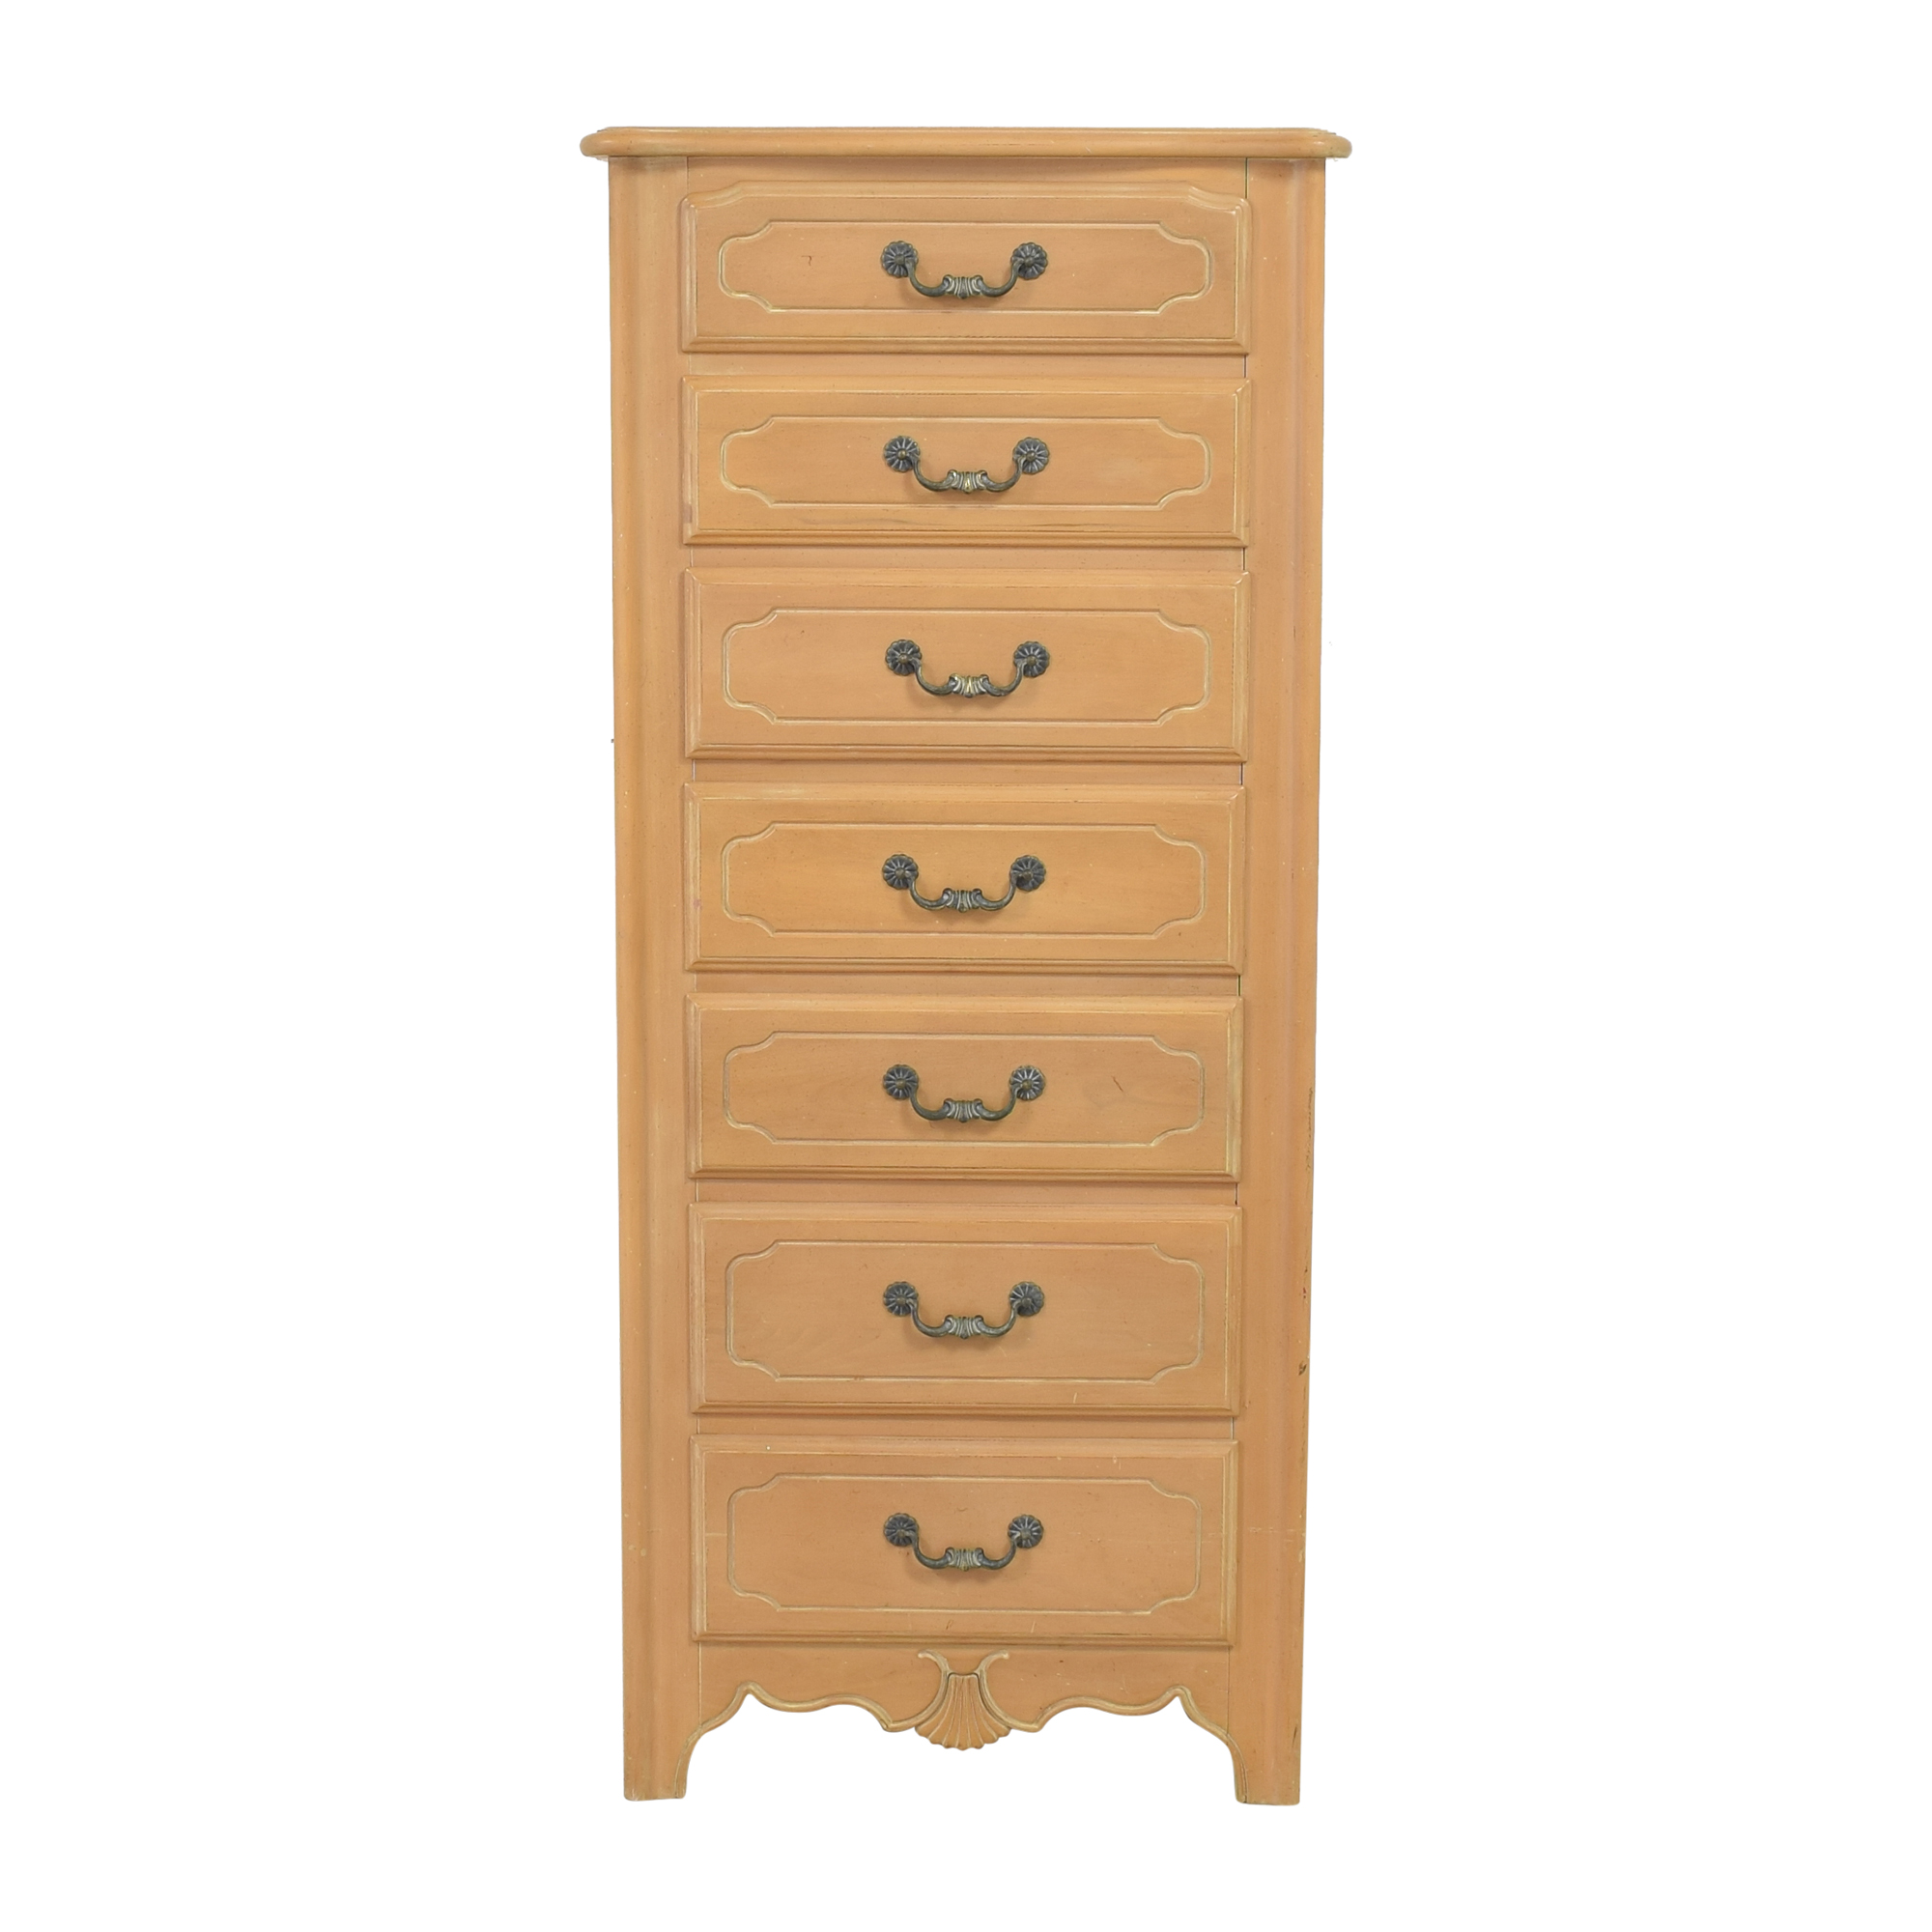 Ethan Allen Ethan Allen Country French Lingerie Chest price